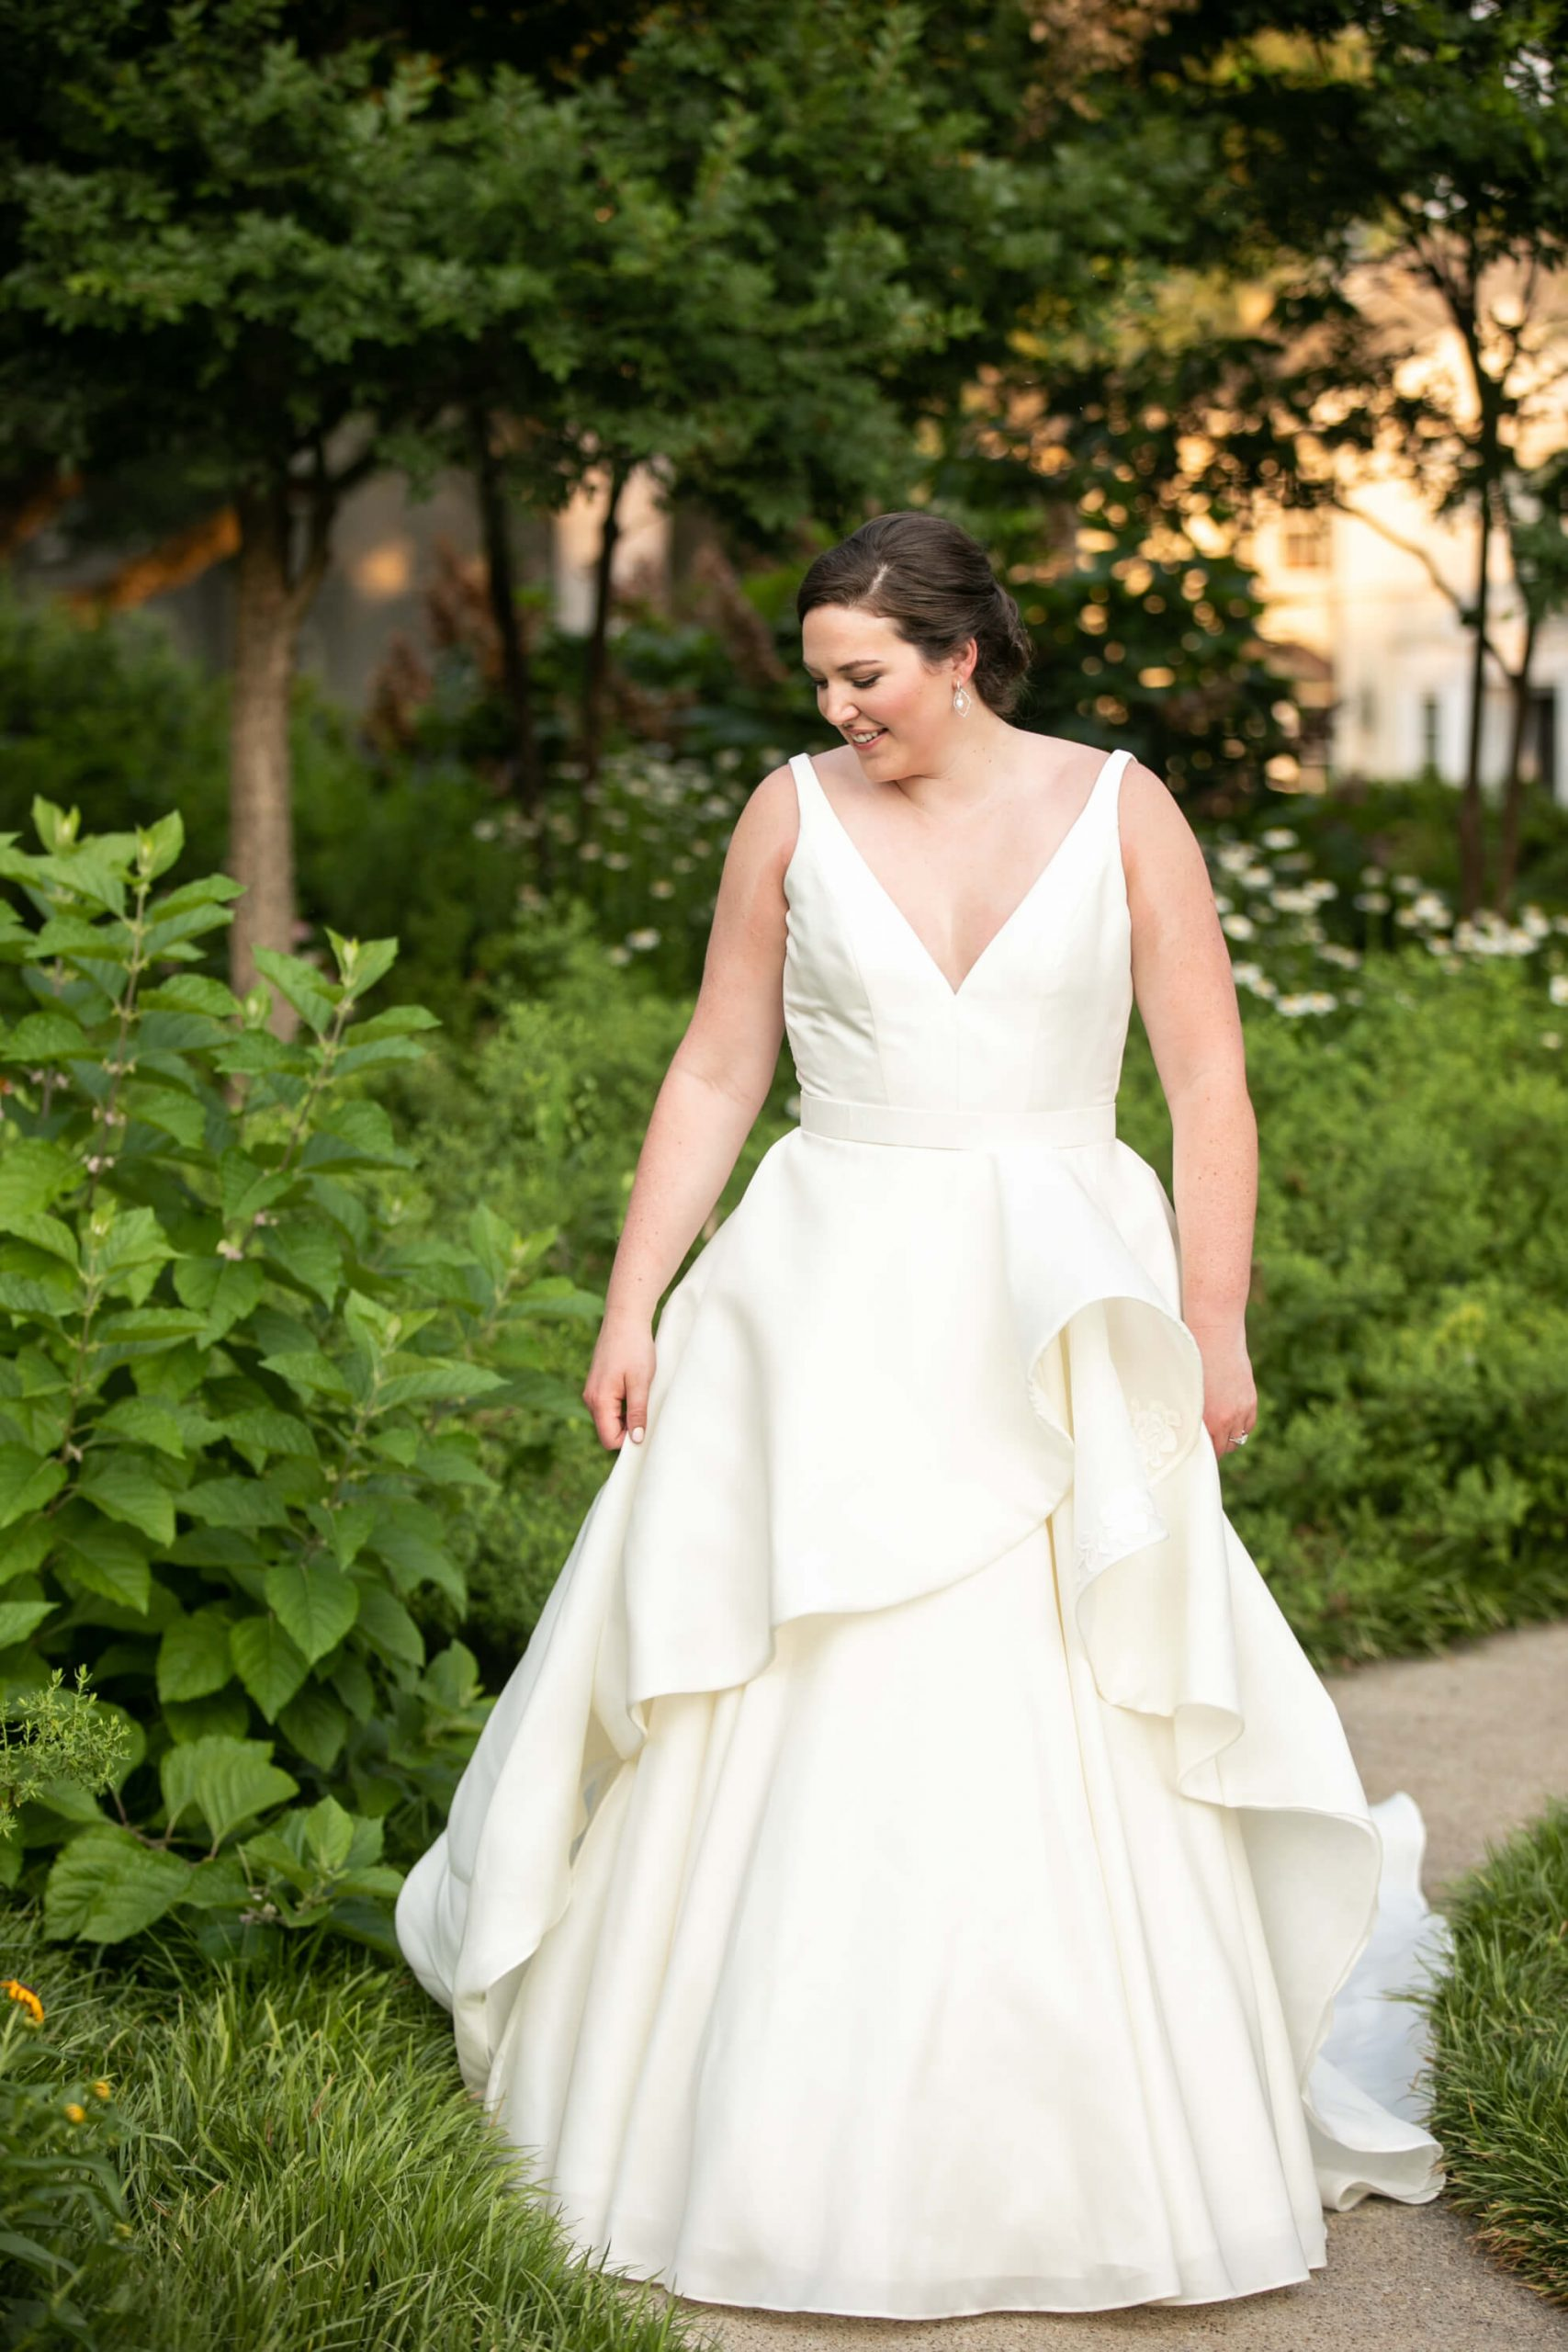 Carole Anne in her bridal gown in a park